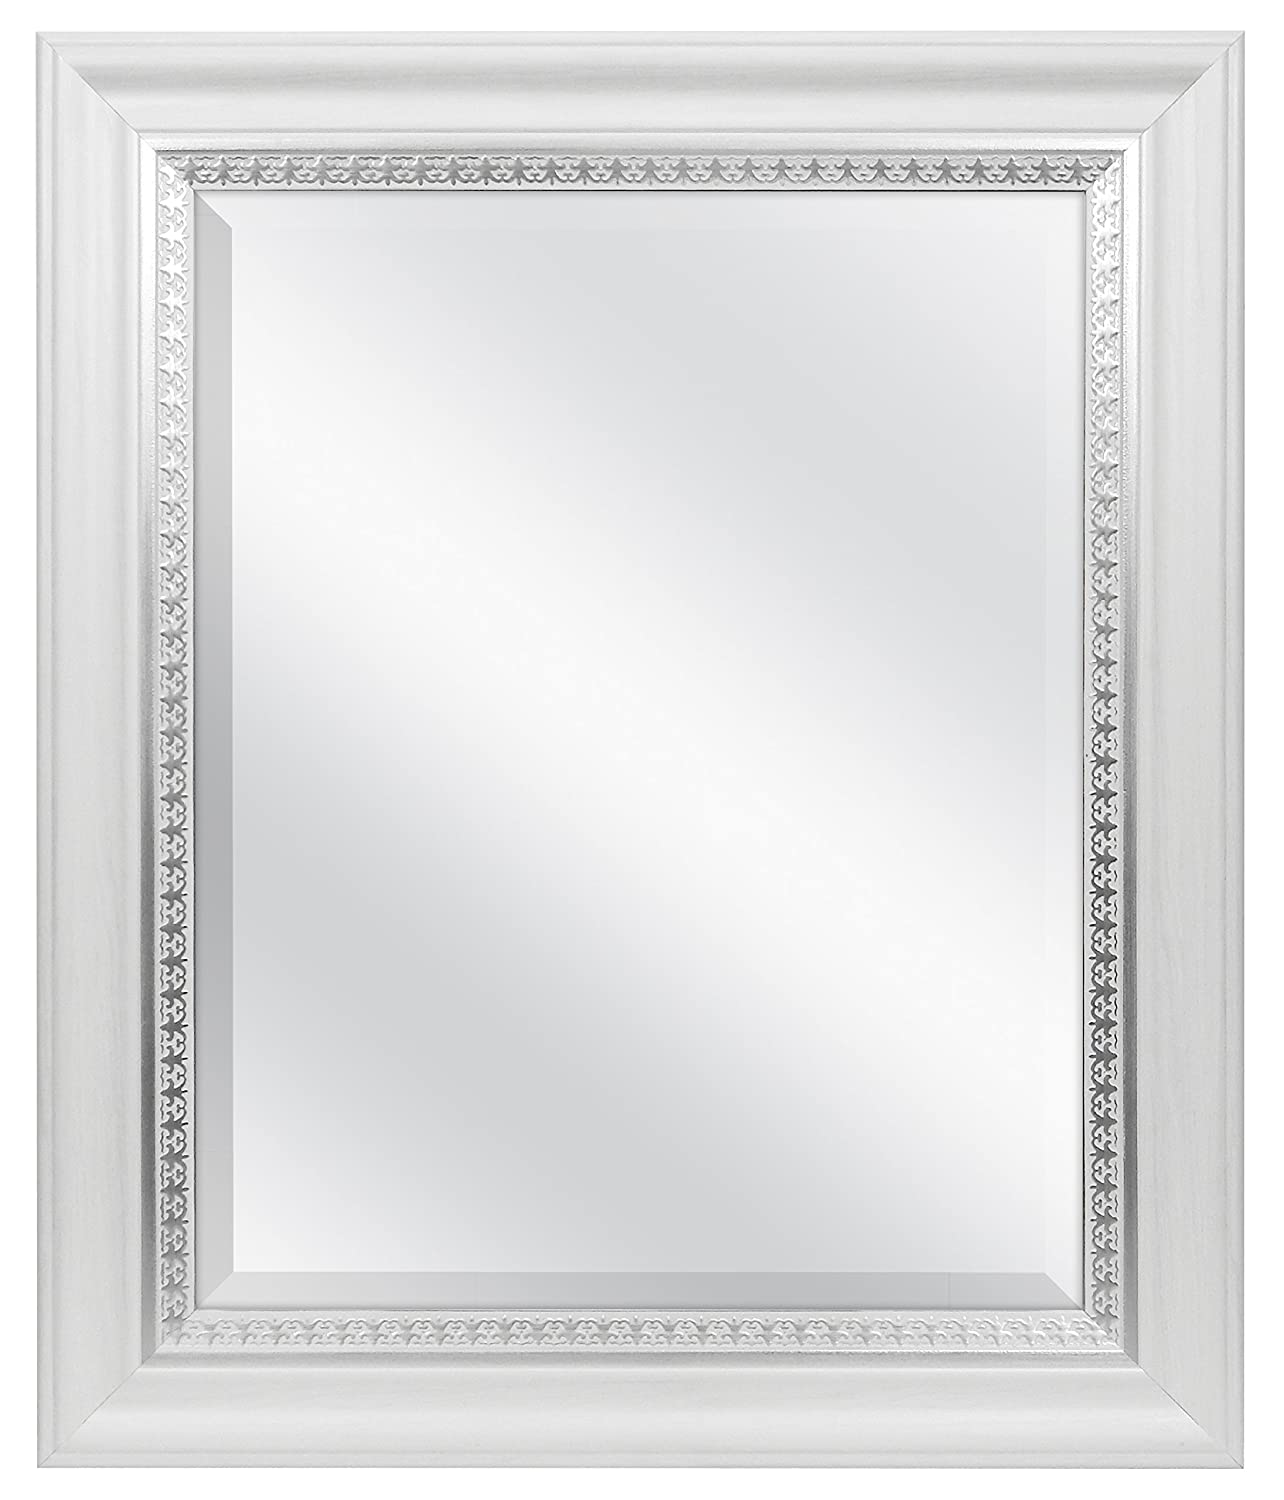 MCS 16x20 Wall Mirror with Embossed Accent, 21x25 Overall Size, White (83047) MCS Industries